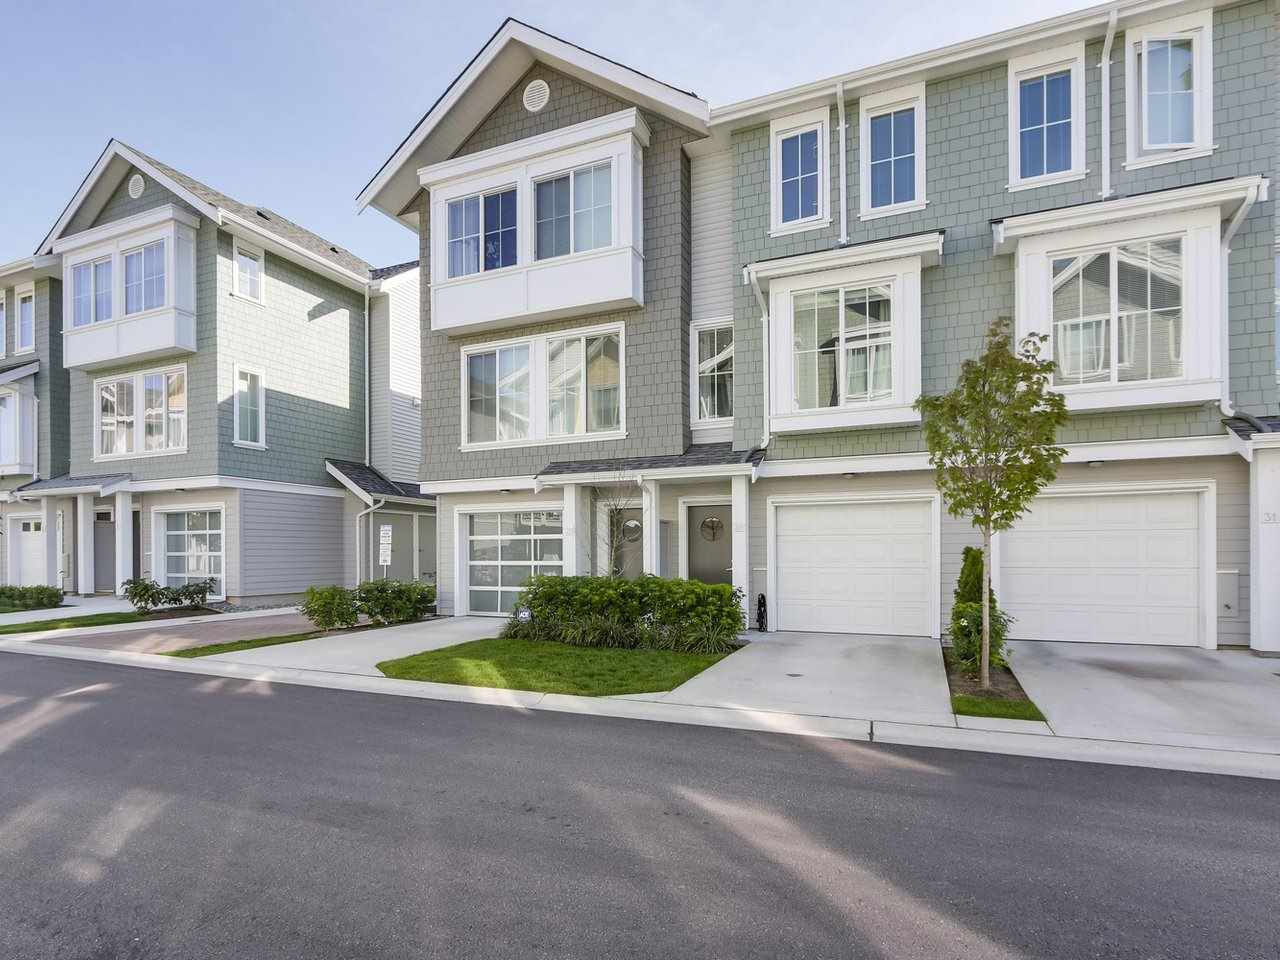 """Main Photo: 30 5550 ADMIRAL Way in Delta: Neilsen Grove Townhouse for sale in """"FAIRWINDS"""" (Ladner)  : MLS®# R2340412"""